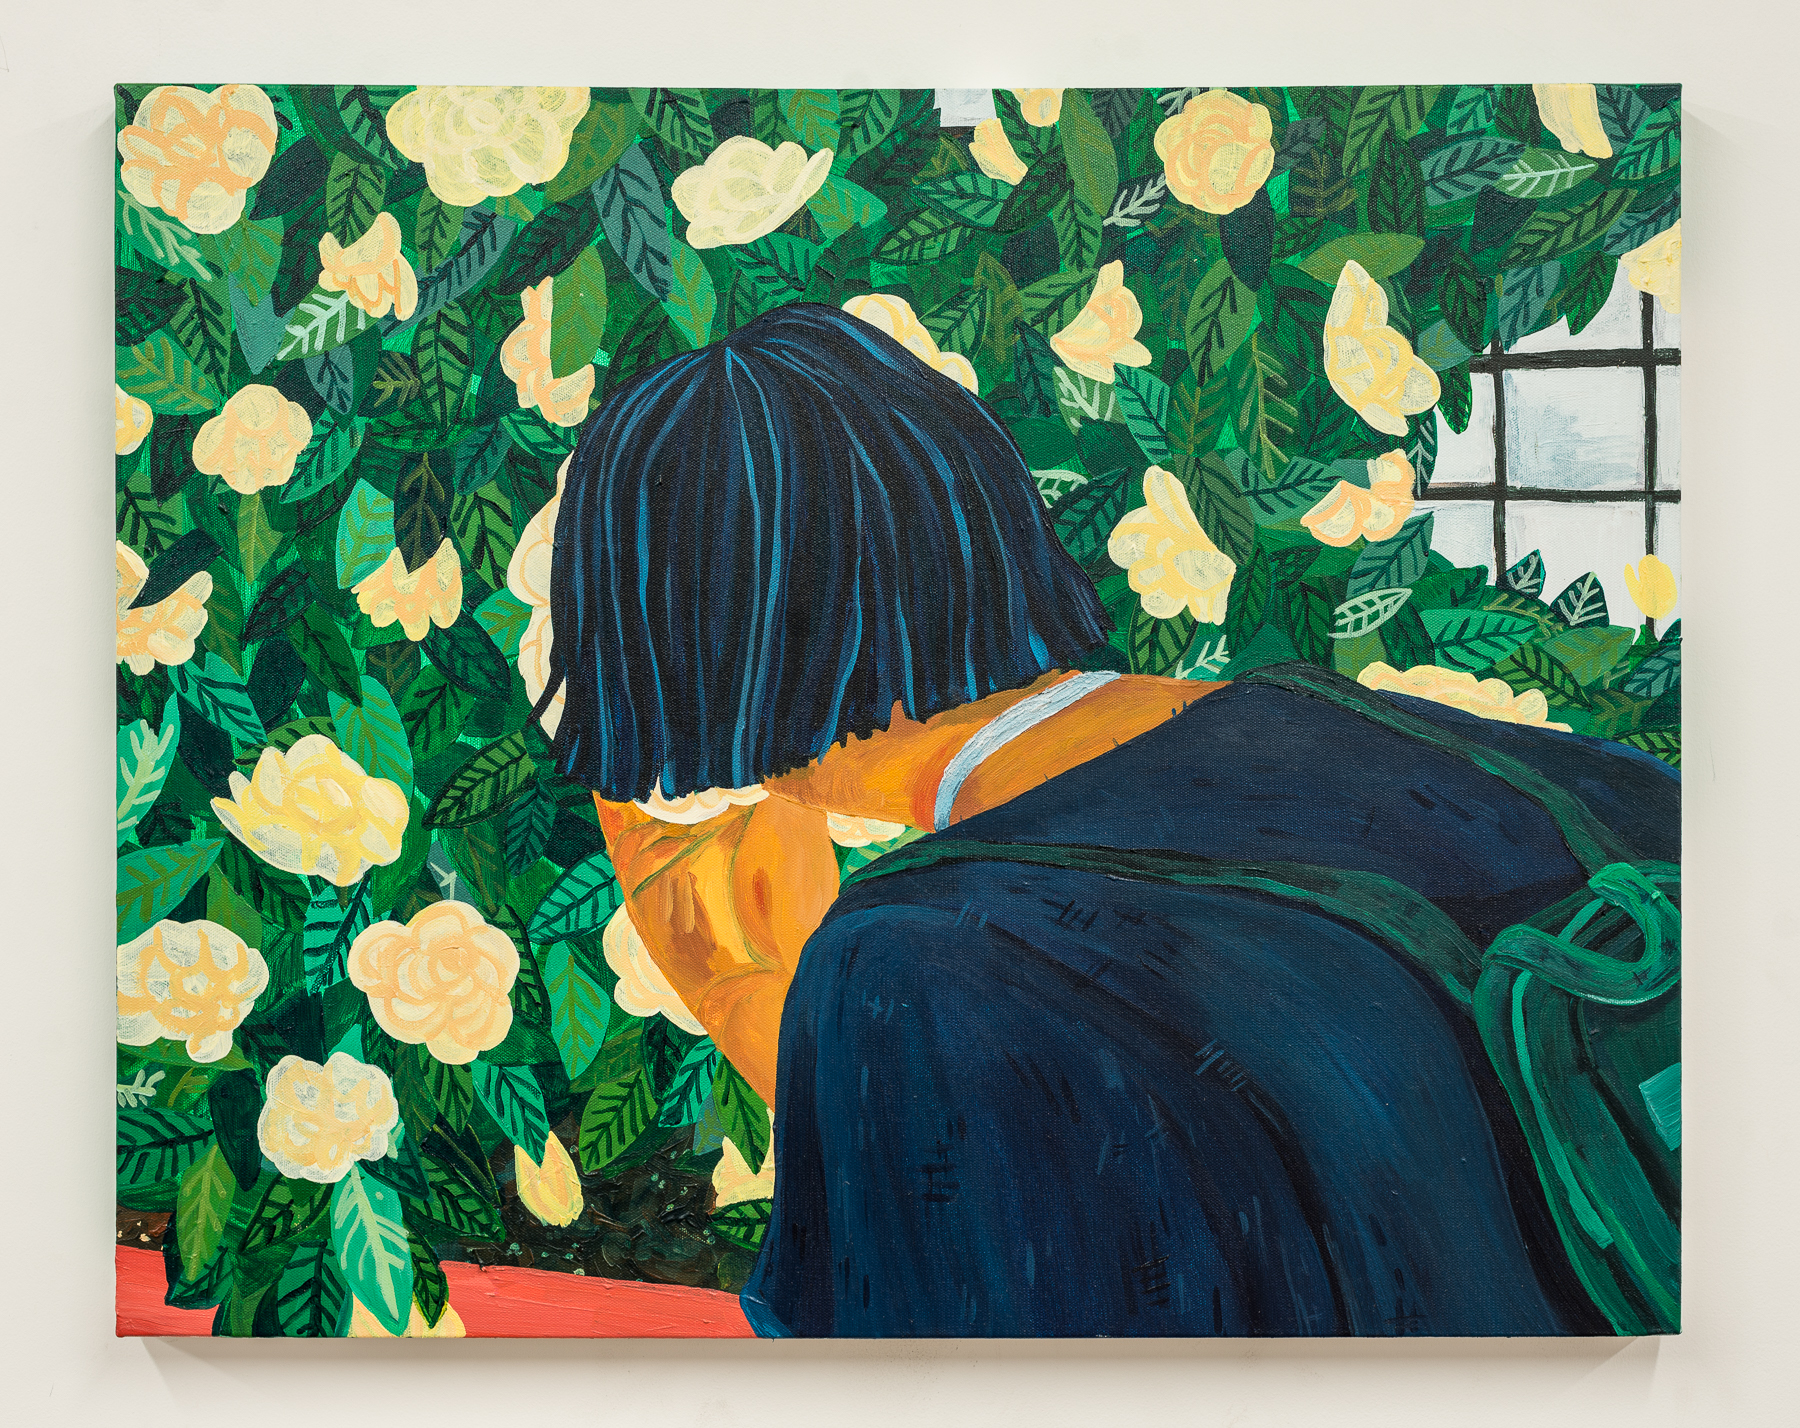 Ellen At The Conservatory Acrylic on canvas 26 x 28 inches 2017